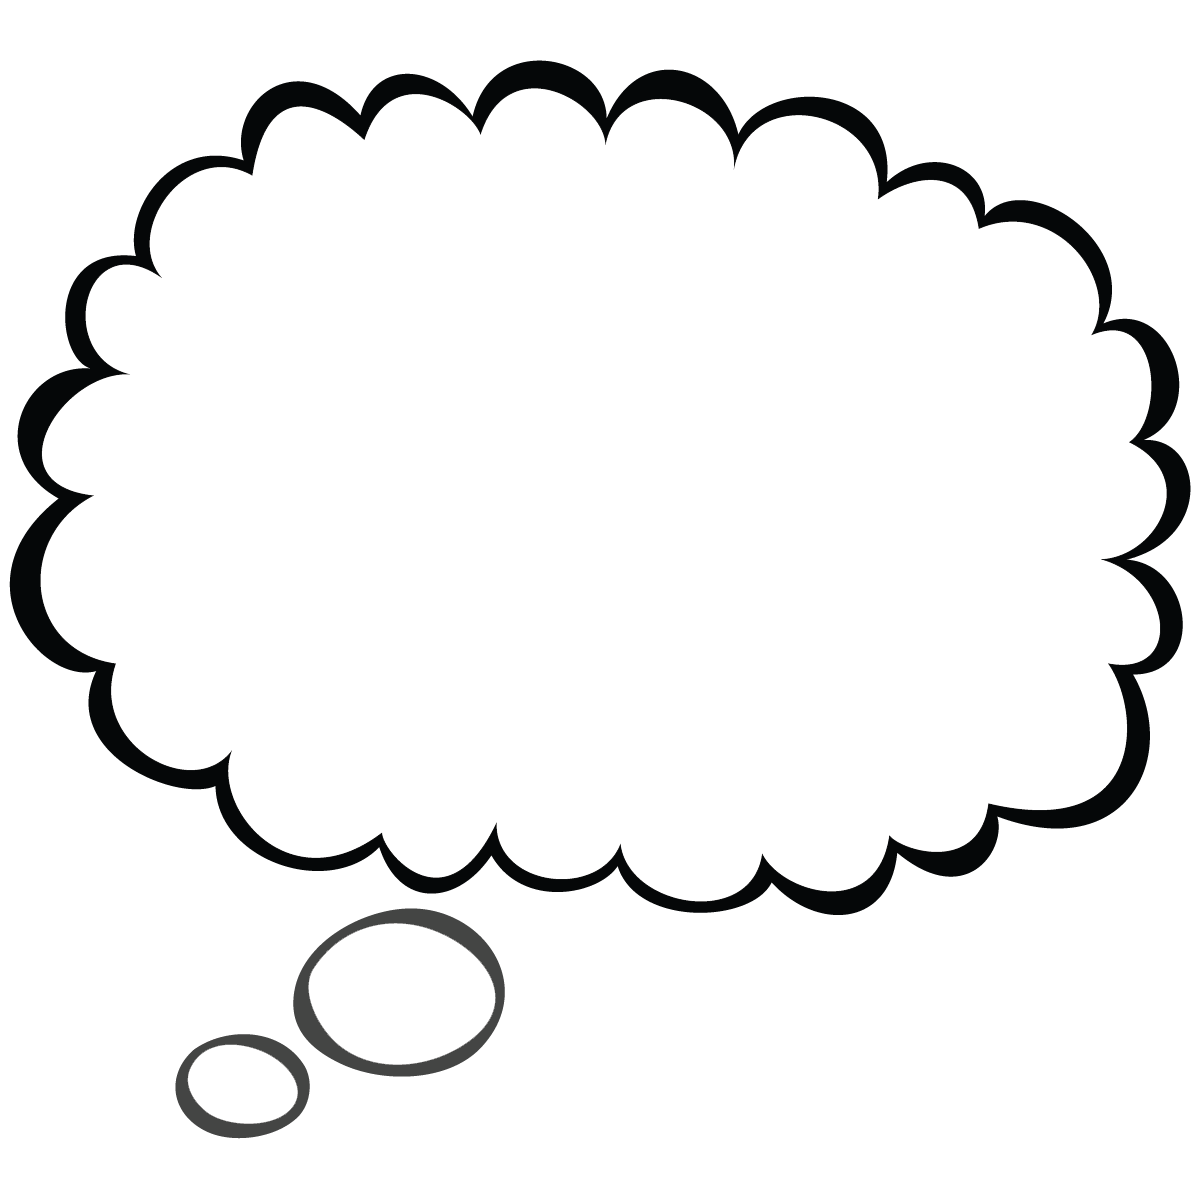 Thought bubble word bubble cartoon speech clip art high quality 4